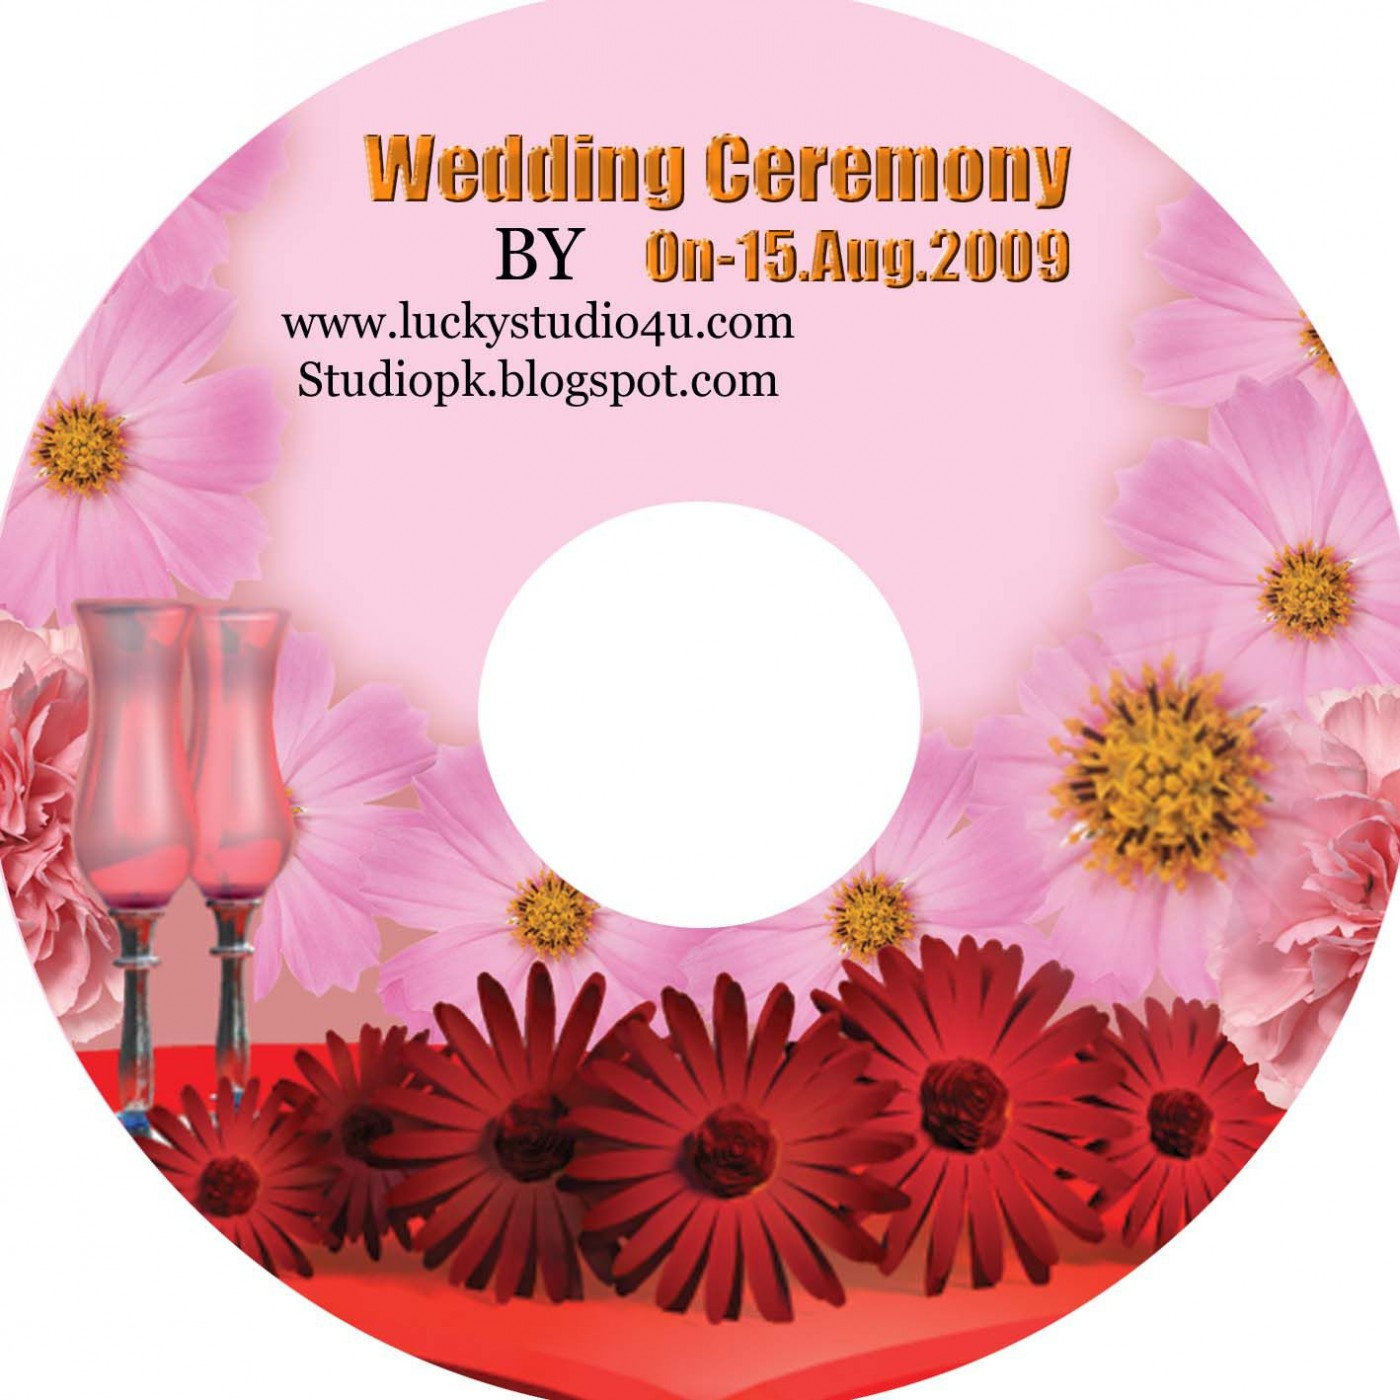 002 Amazing Wedding Cd Cover Design Template Free Download High Resolution 1400